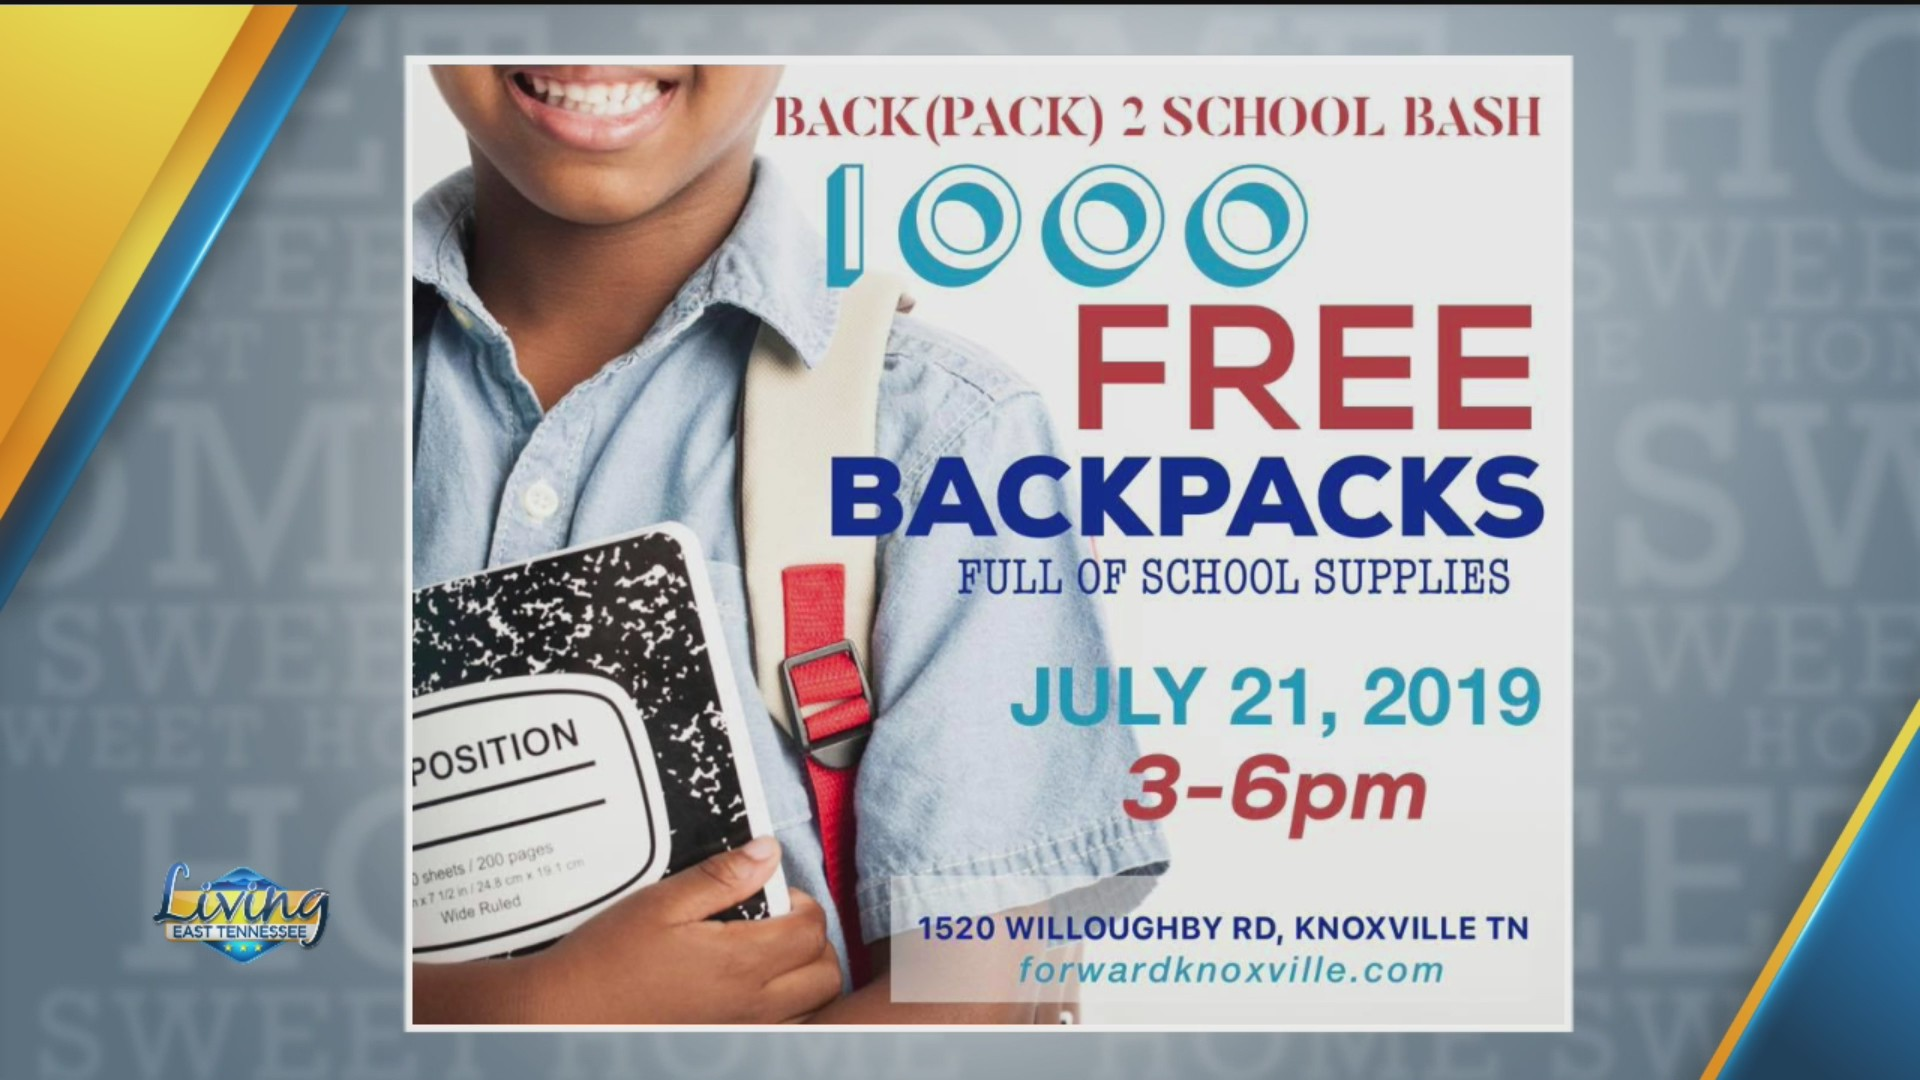 Time for the Back(pack) to school bash with Forward Church | WATE